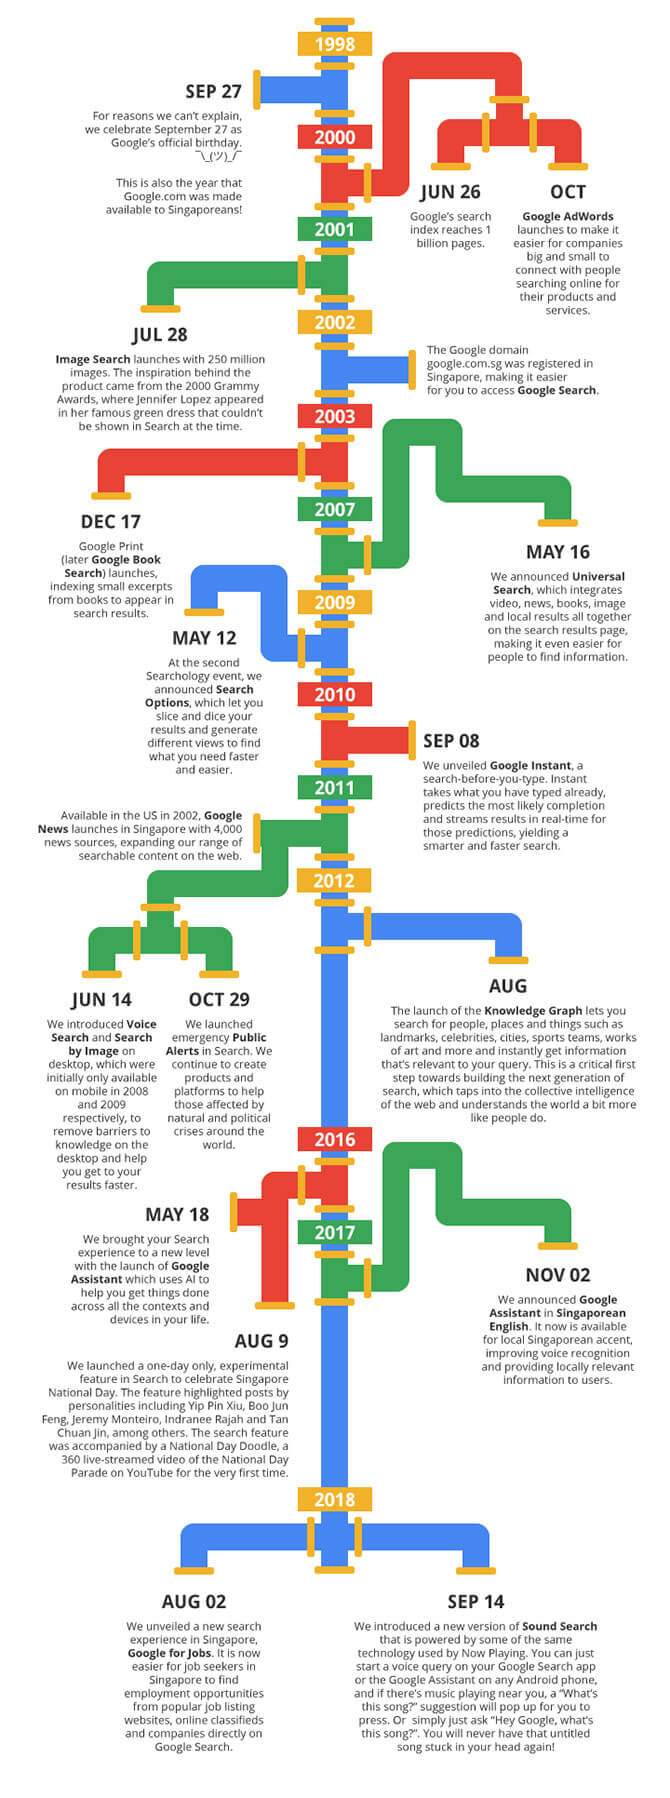 Google Search Timeline and Milestones